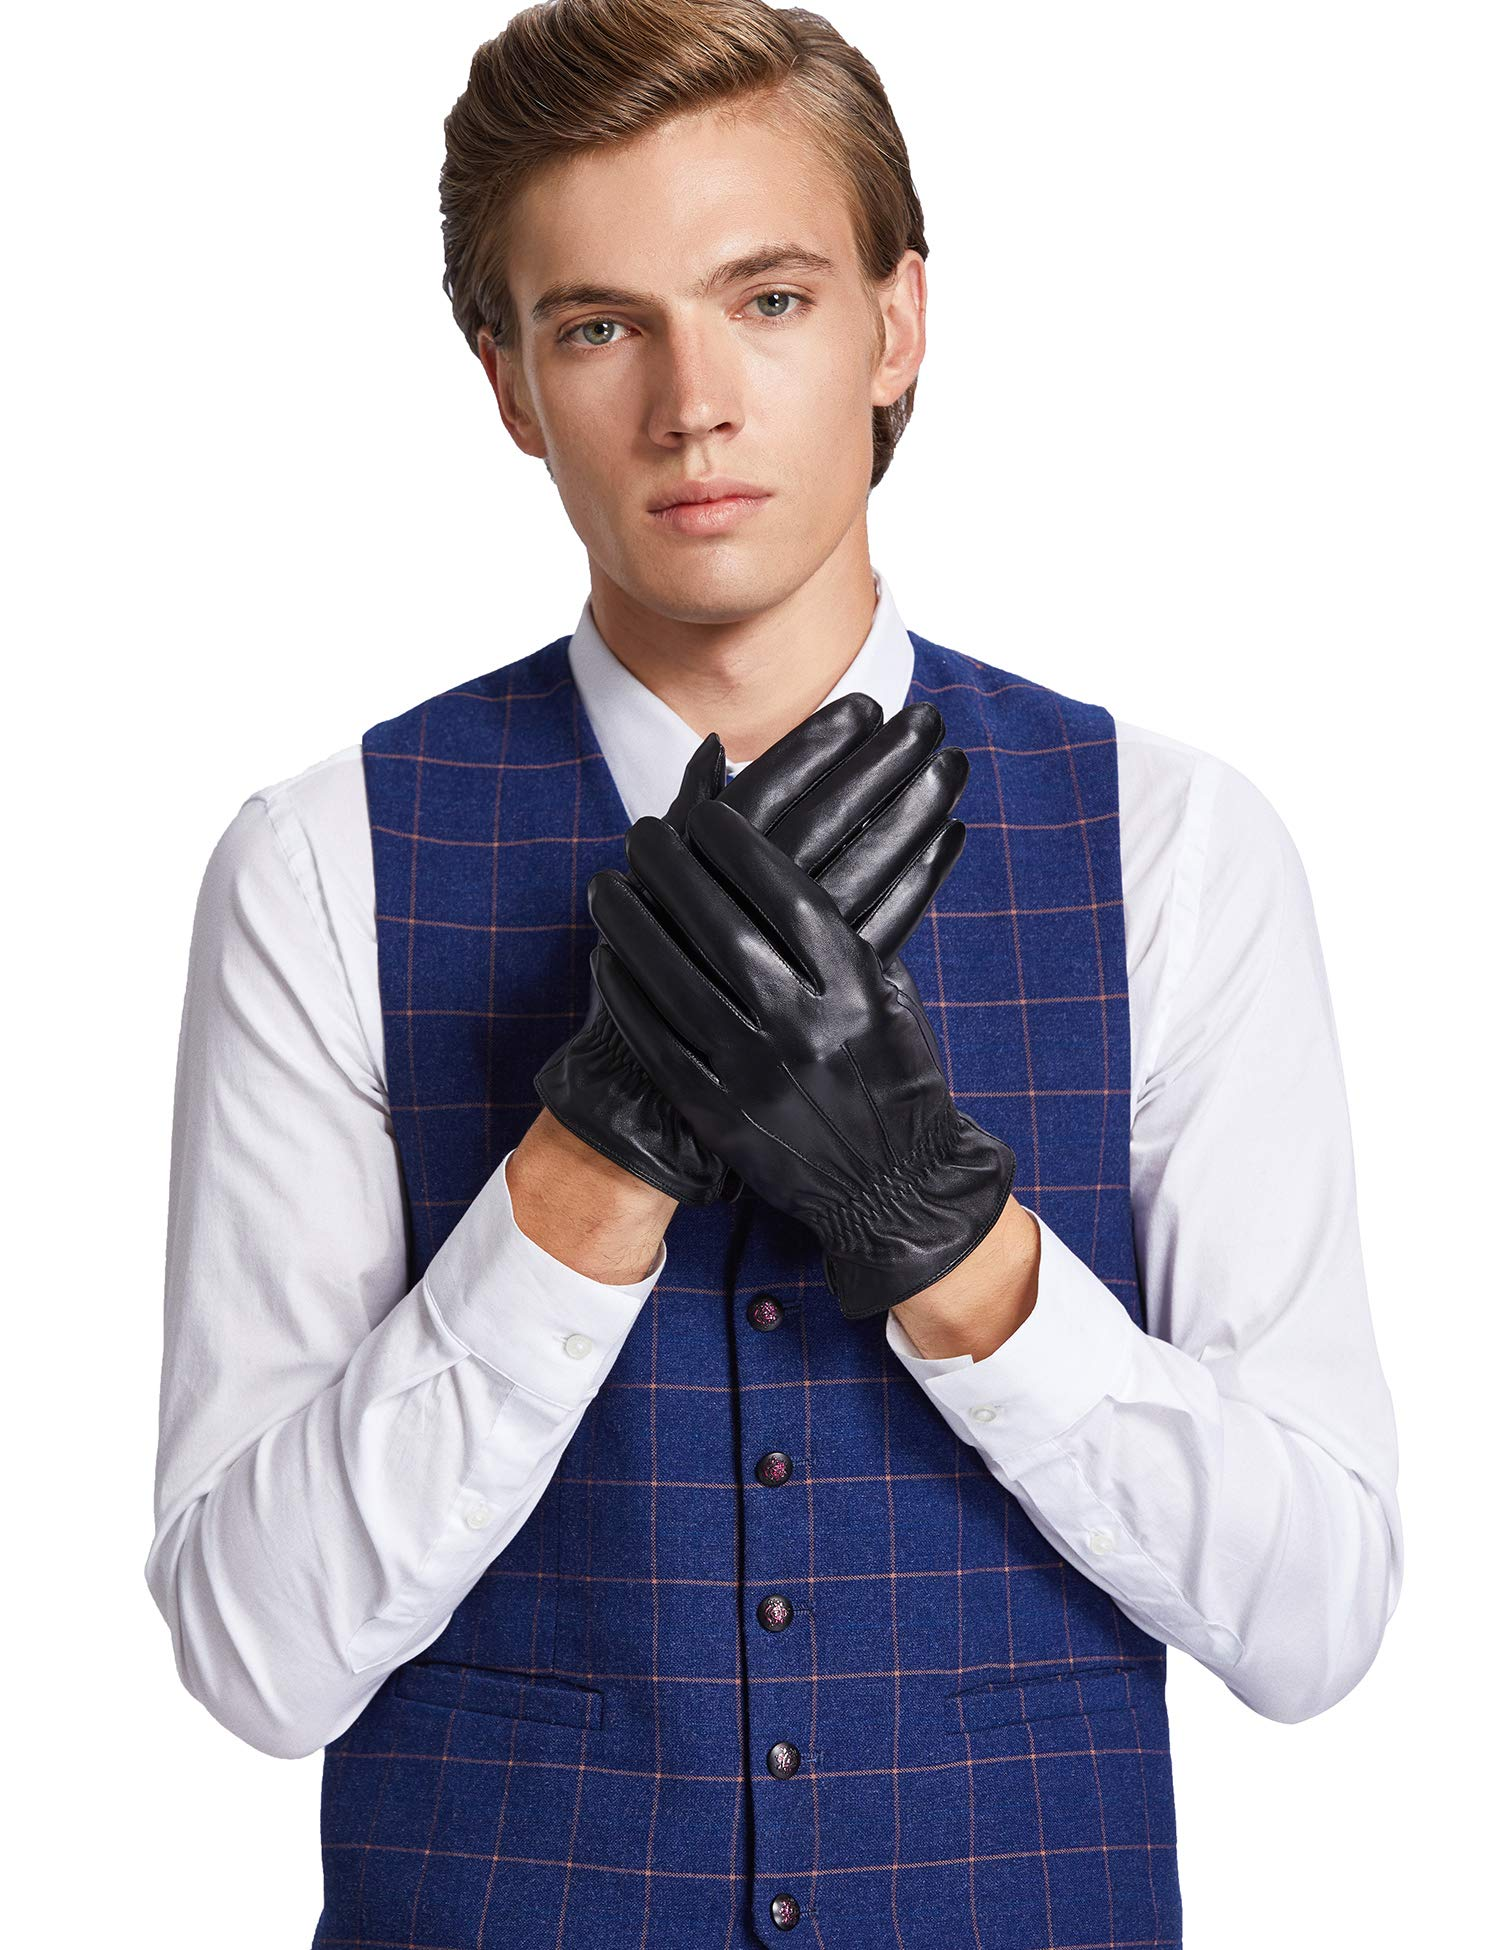 Sheeper Men's Touchscreen Winter Genuine Leather Classic Driving Gloves Motorcycle Gloves (Black) L